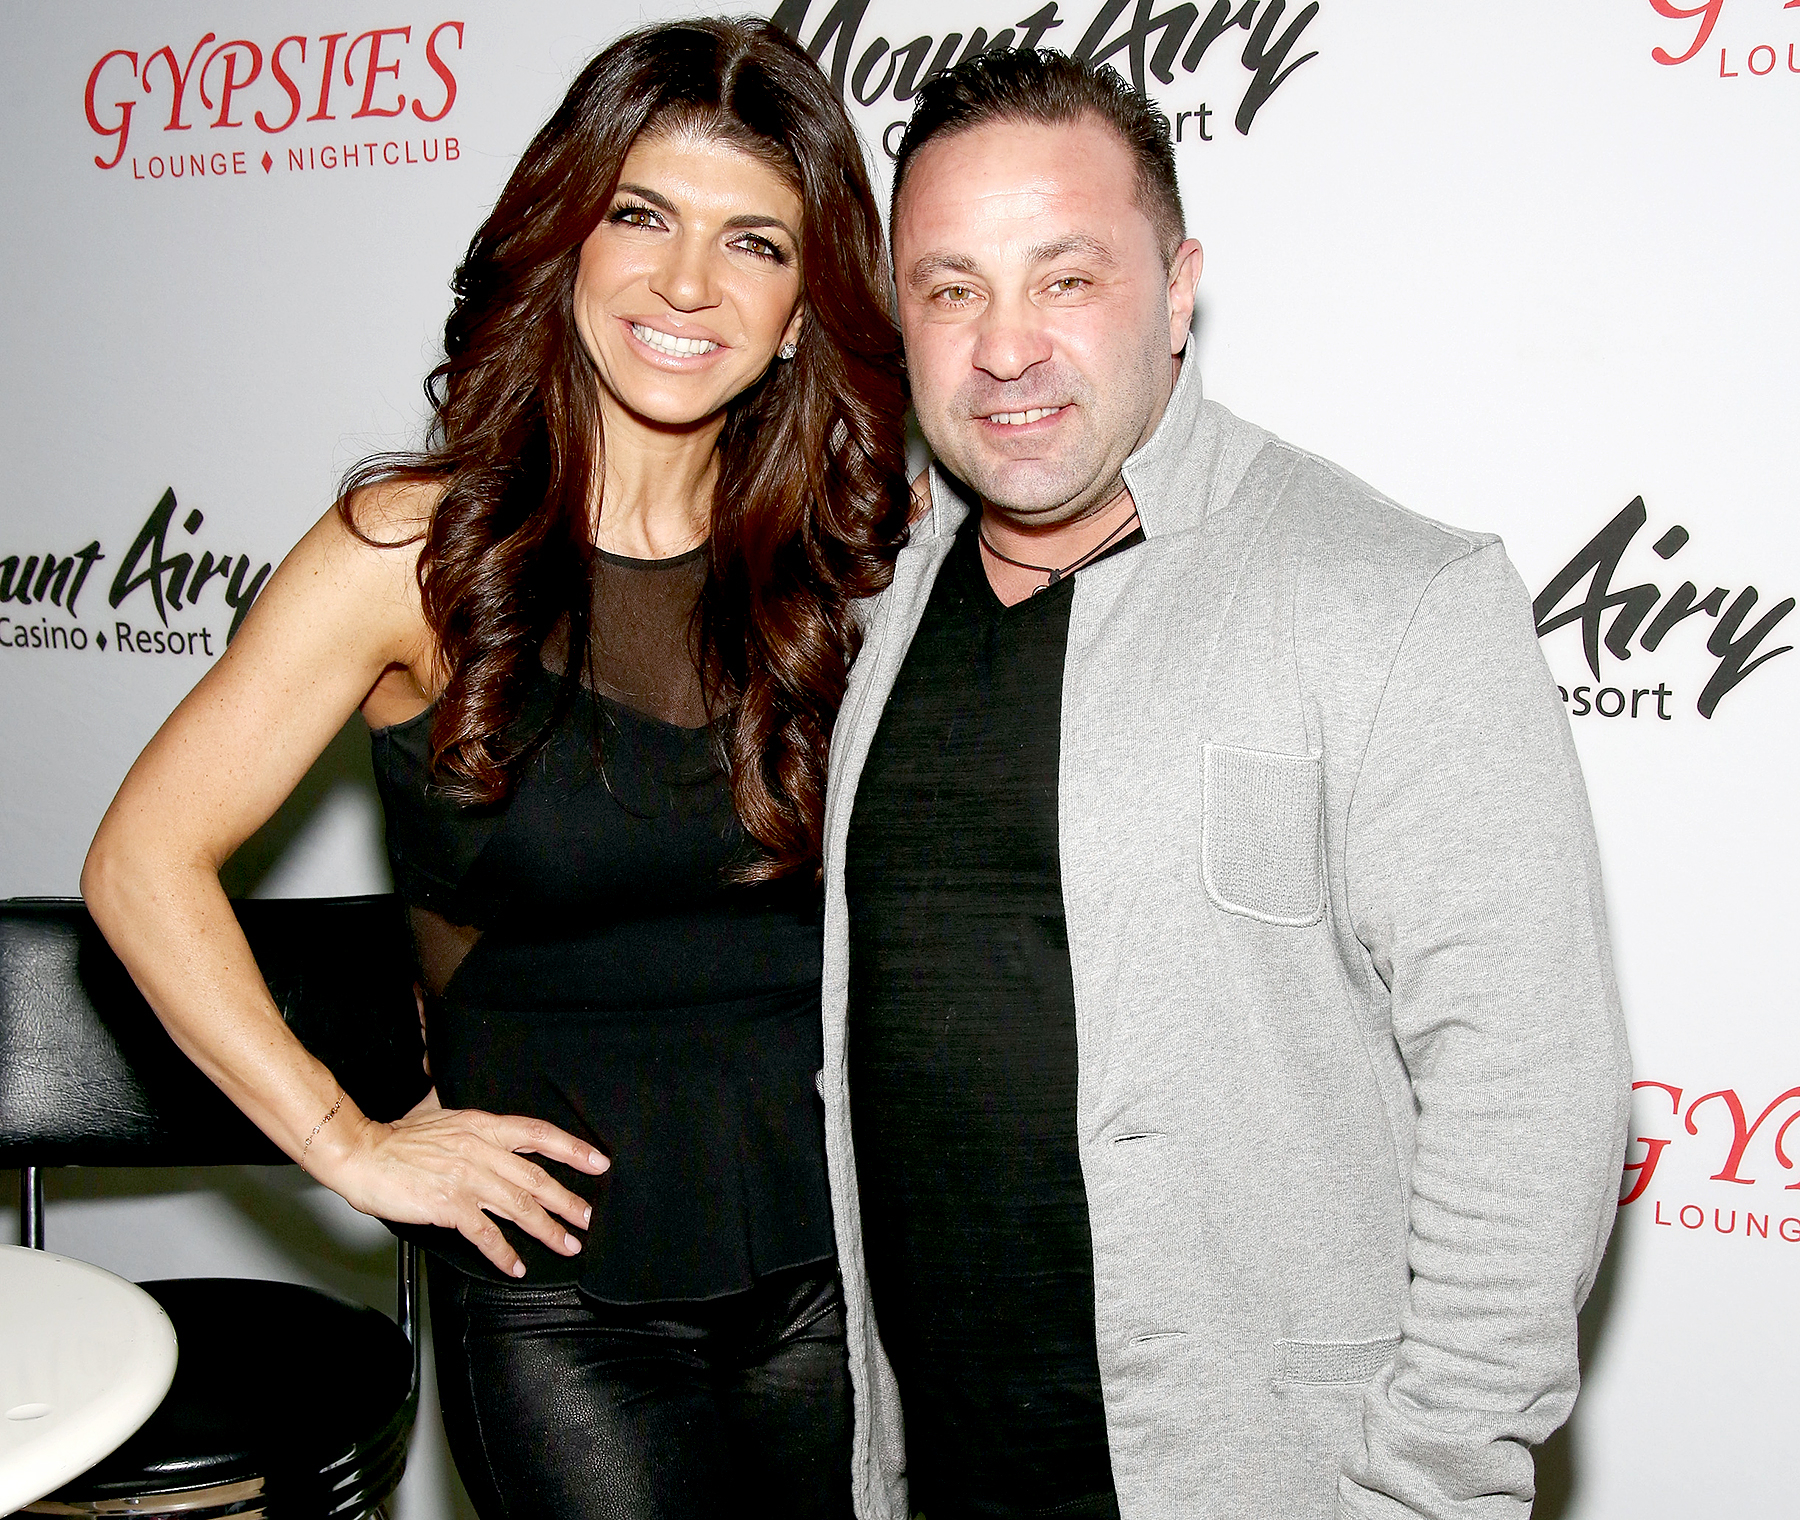 Teresa Giudice, star of The Real Houswives of New Jersey, and Joe Giudice appears at Mount Airy Resort Casino for a book signing and meet and greet on March 5, 2016 in Mount Pocono City.